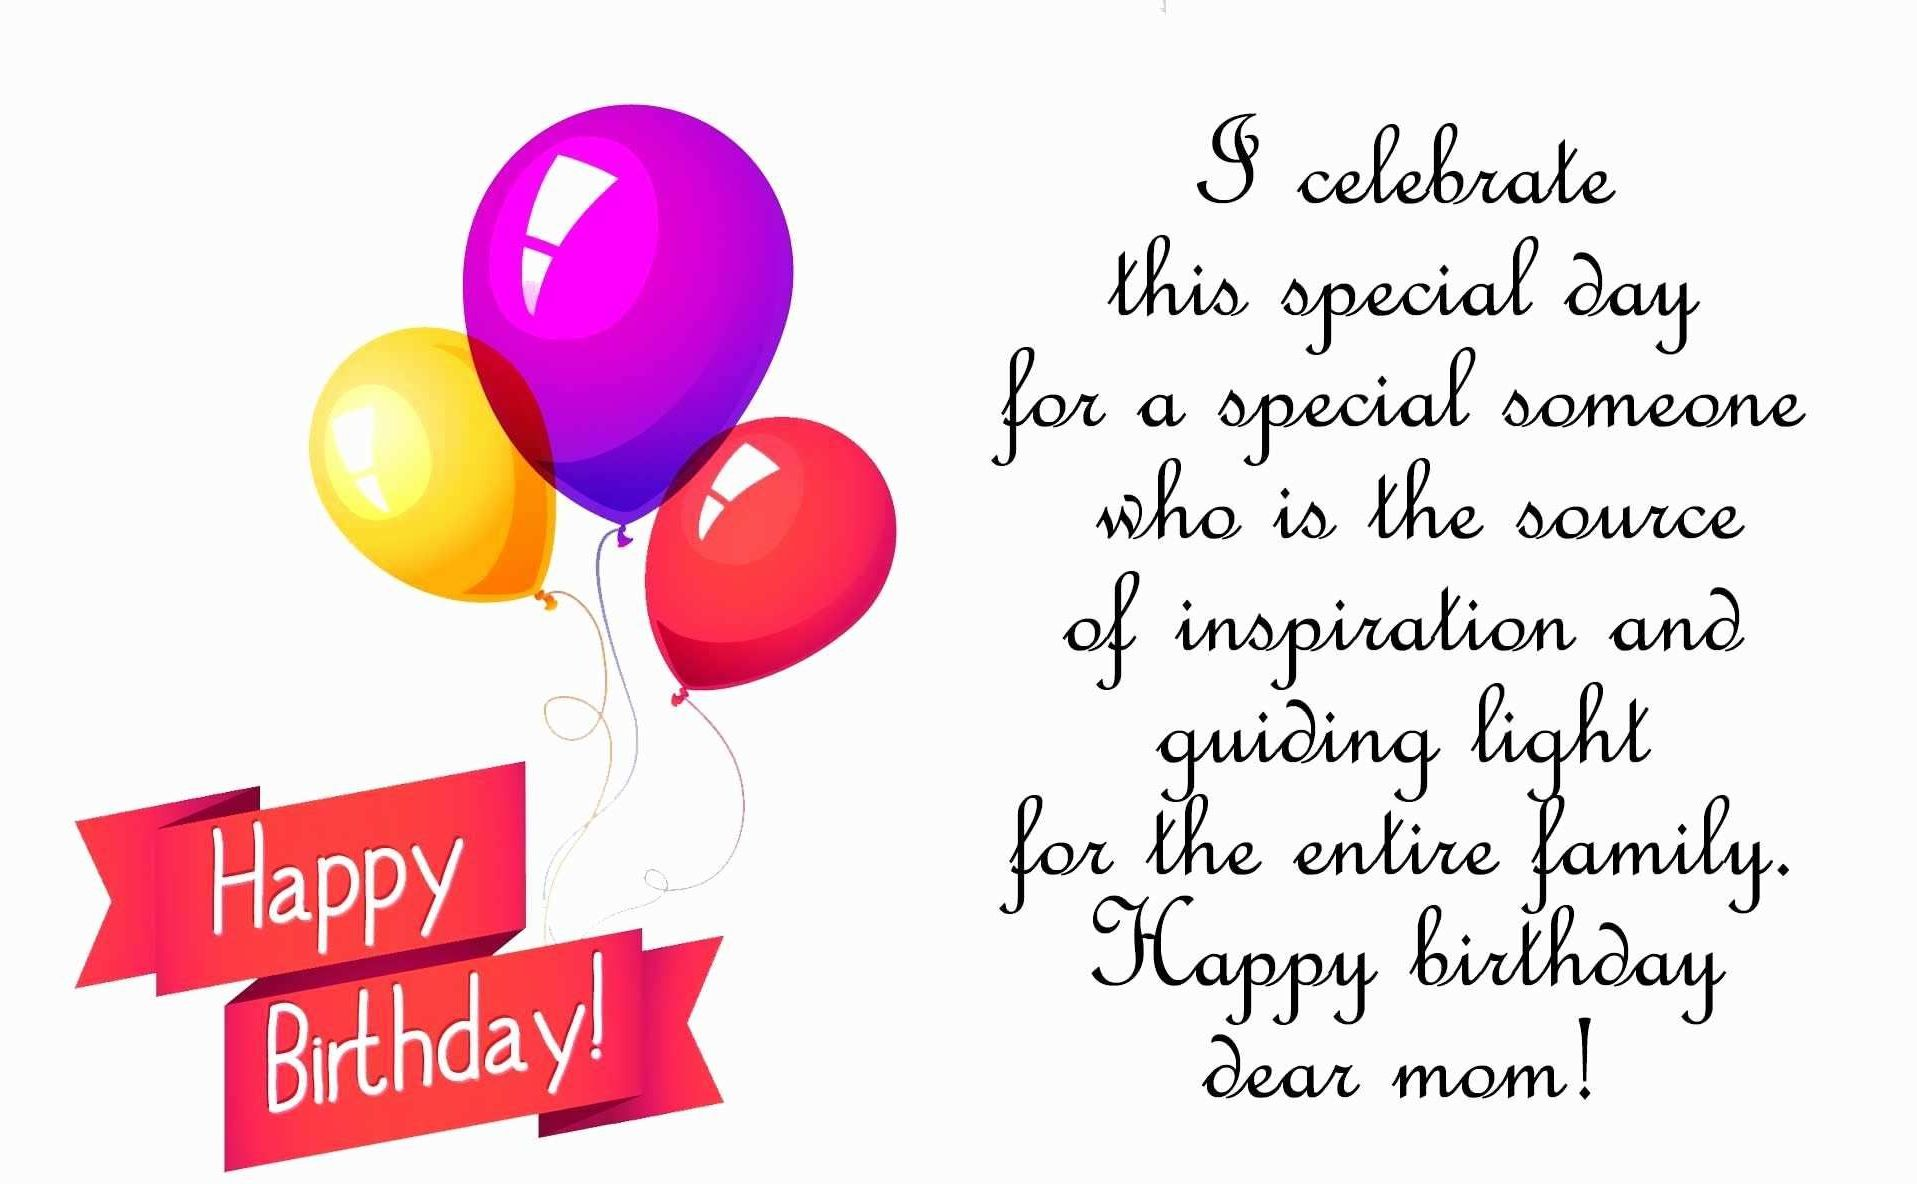 New cute Happy Birthday Wishes for father mother sister brother wife husband girlfriend boyfriend 1